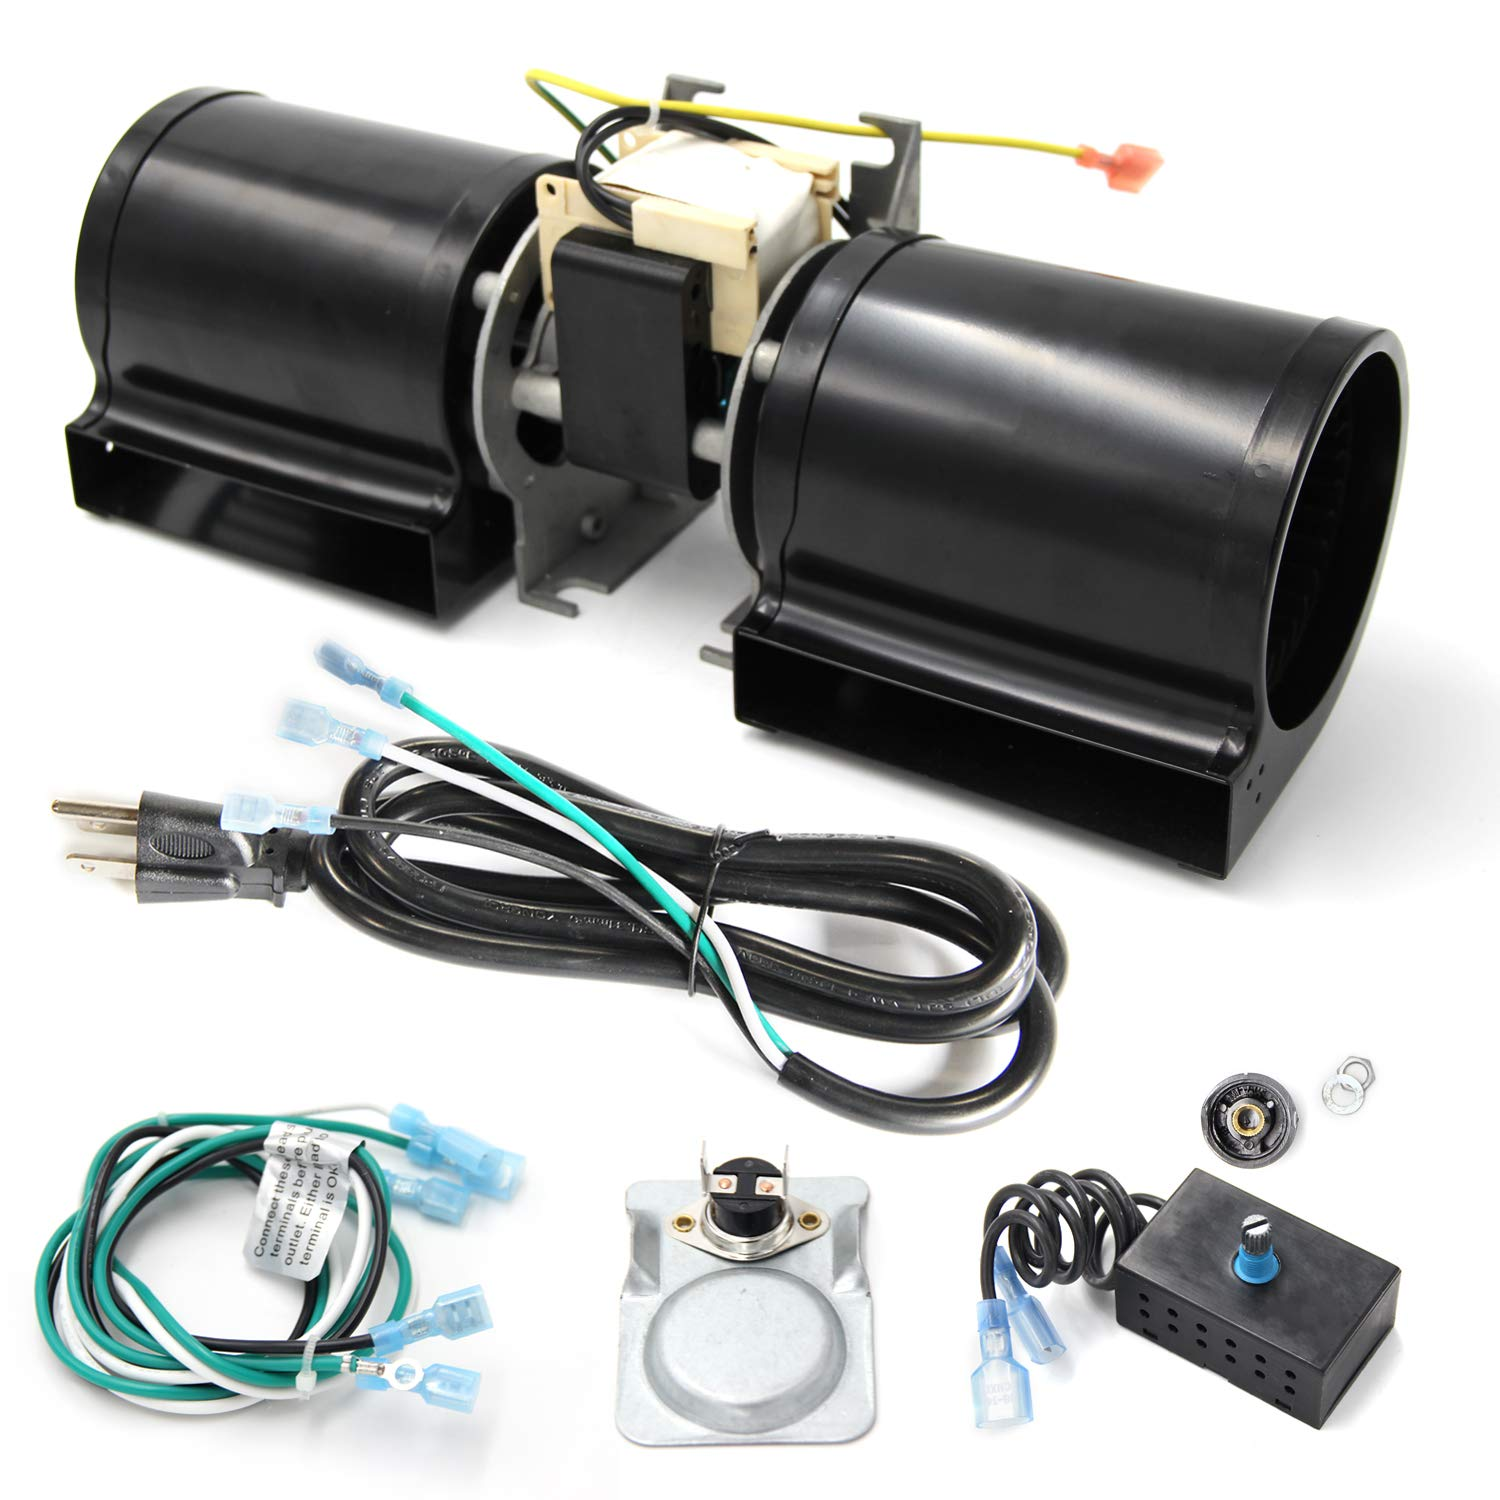 VICOOL GFK-160 GFK-160A Fireplace Blower Kit for Heat N Glo, Hearth and Home, Quadra Fire, Lennox, Superior, Regency, Royal, Jakel, Nordica, Rotom by VICOOL